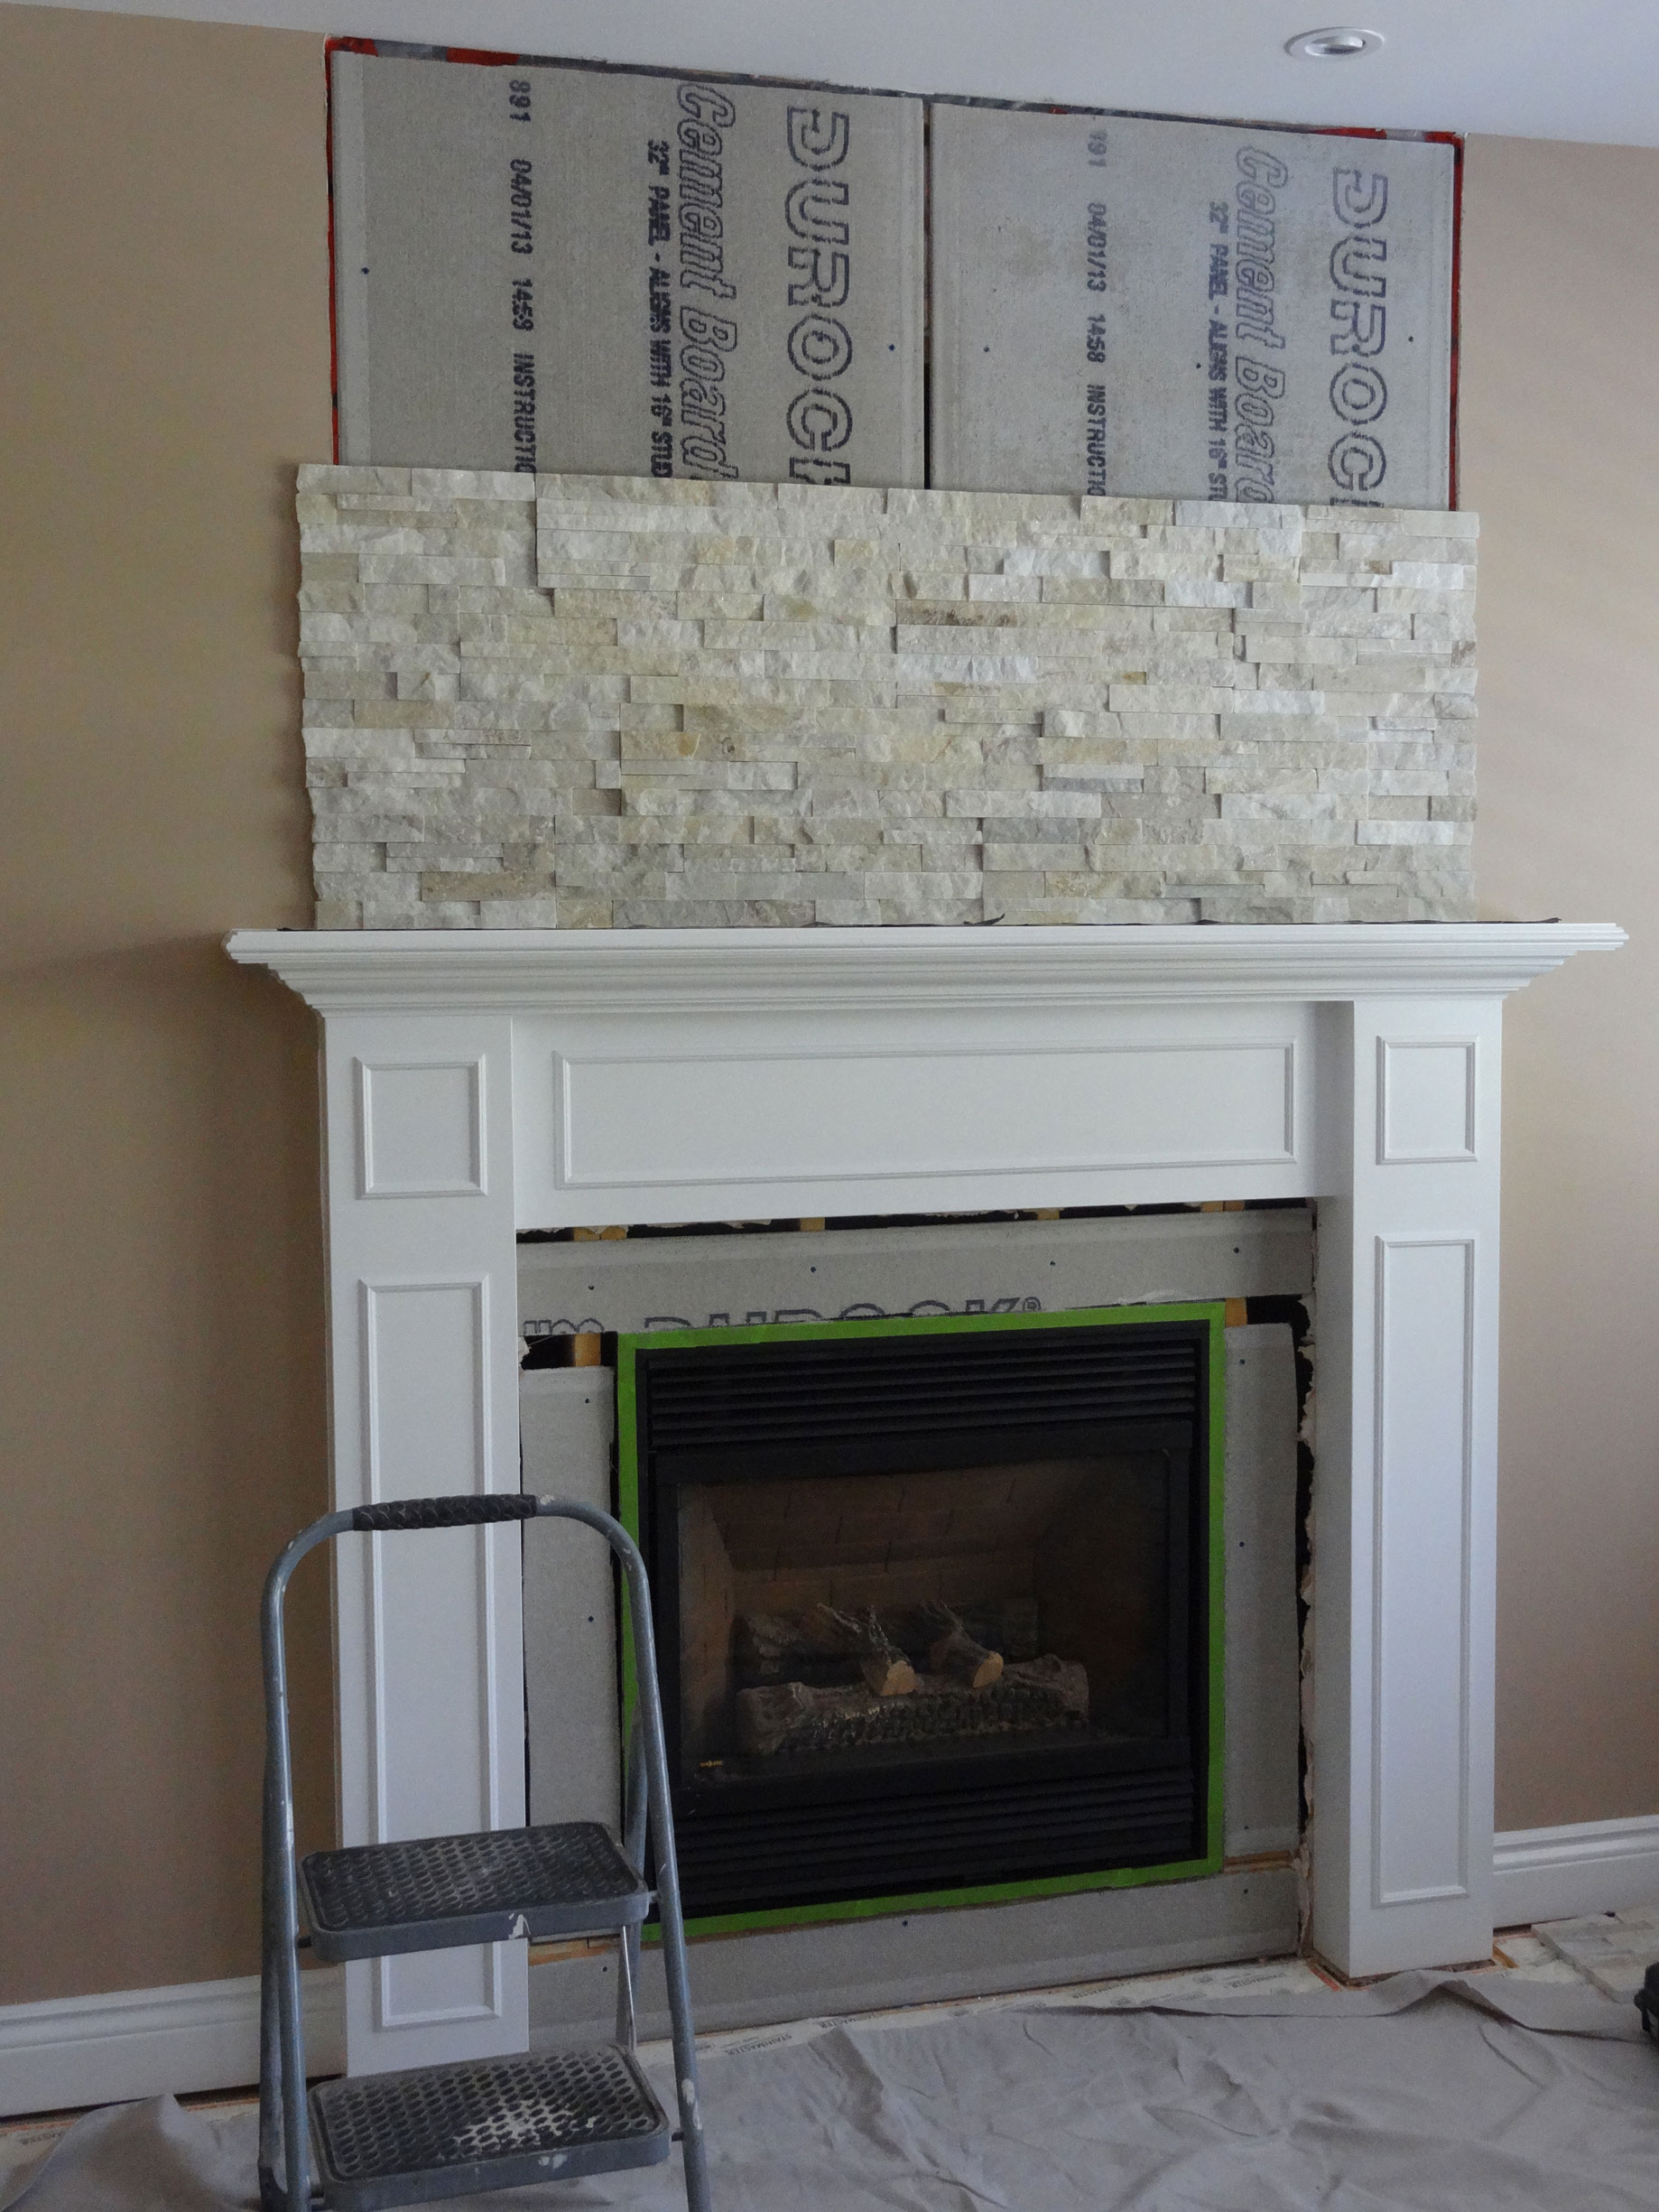 bayport martin g heat installation sales fireplace service gas insert and kozy